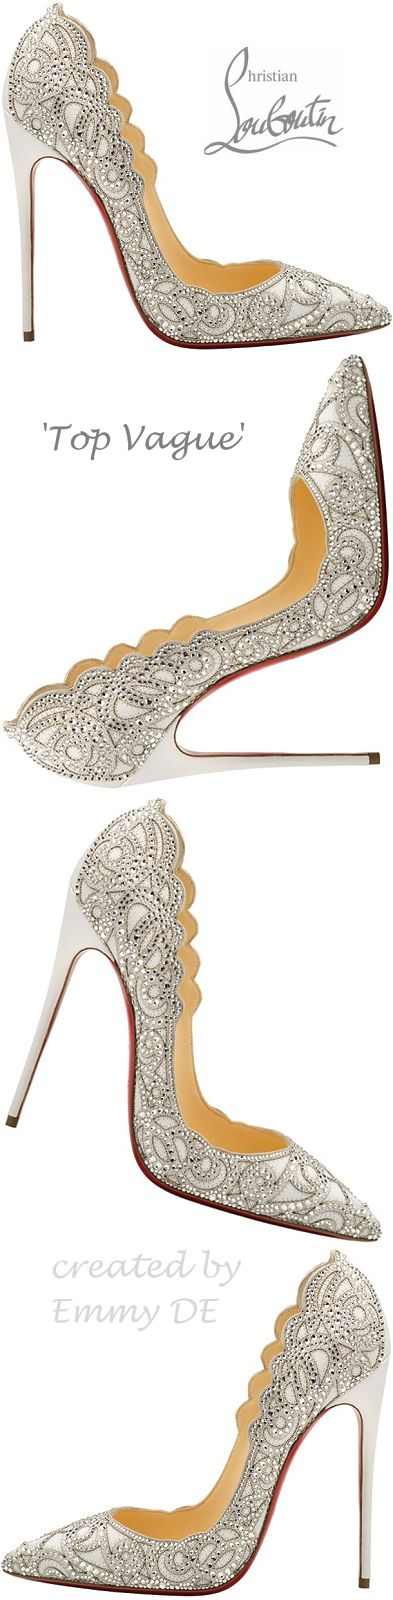 brilliant luxury by emmy de christian louboutin top vague spring 2015